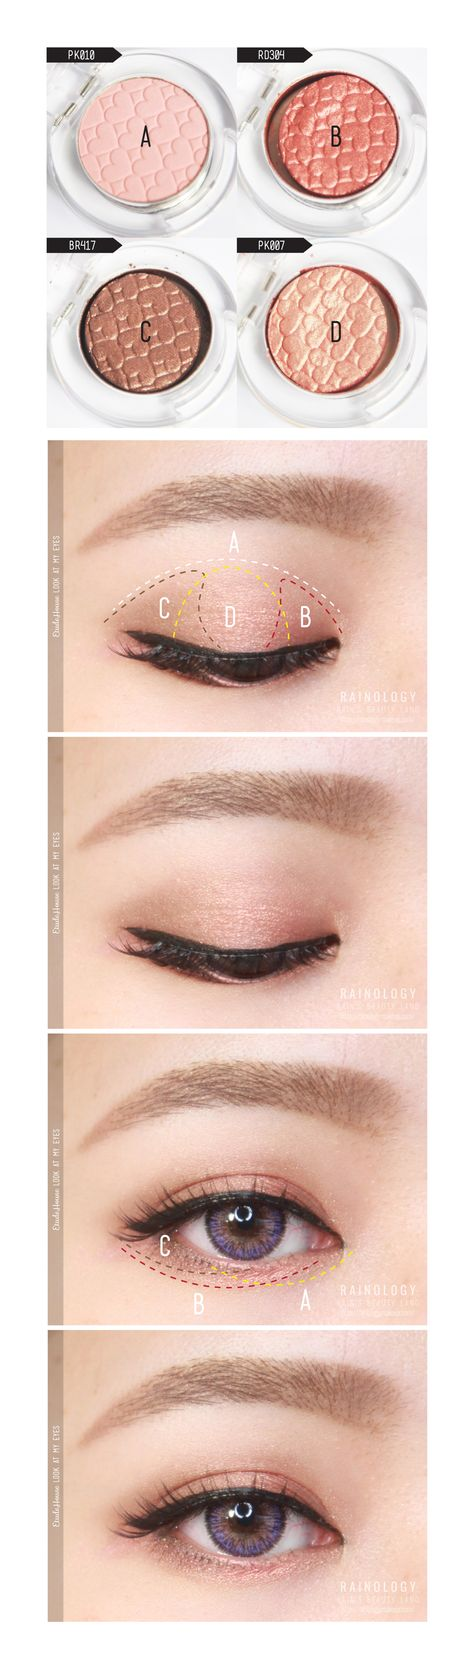 best images about idei pt makeup on pinterest around the worlds